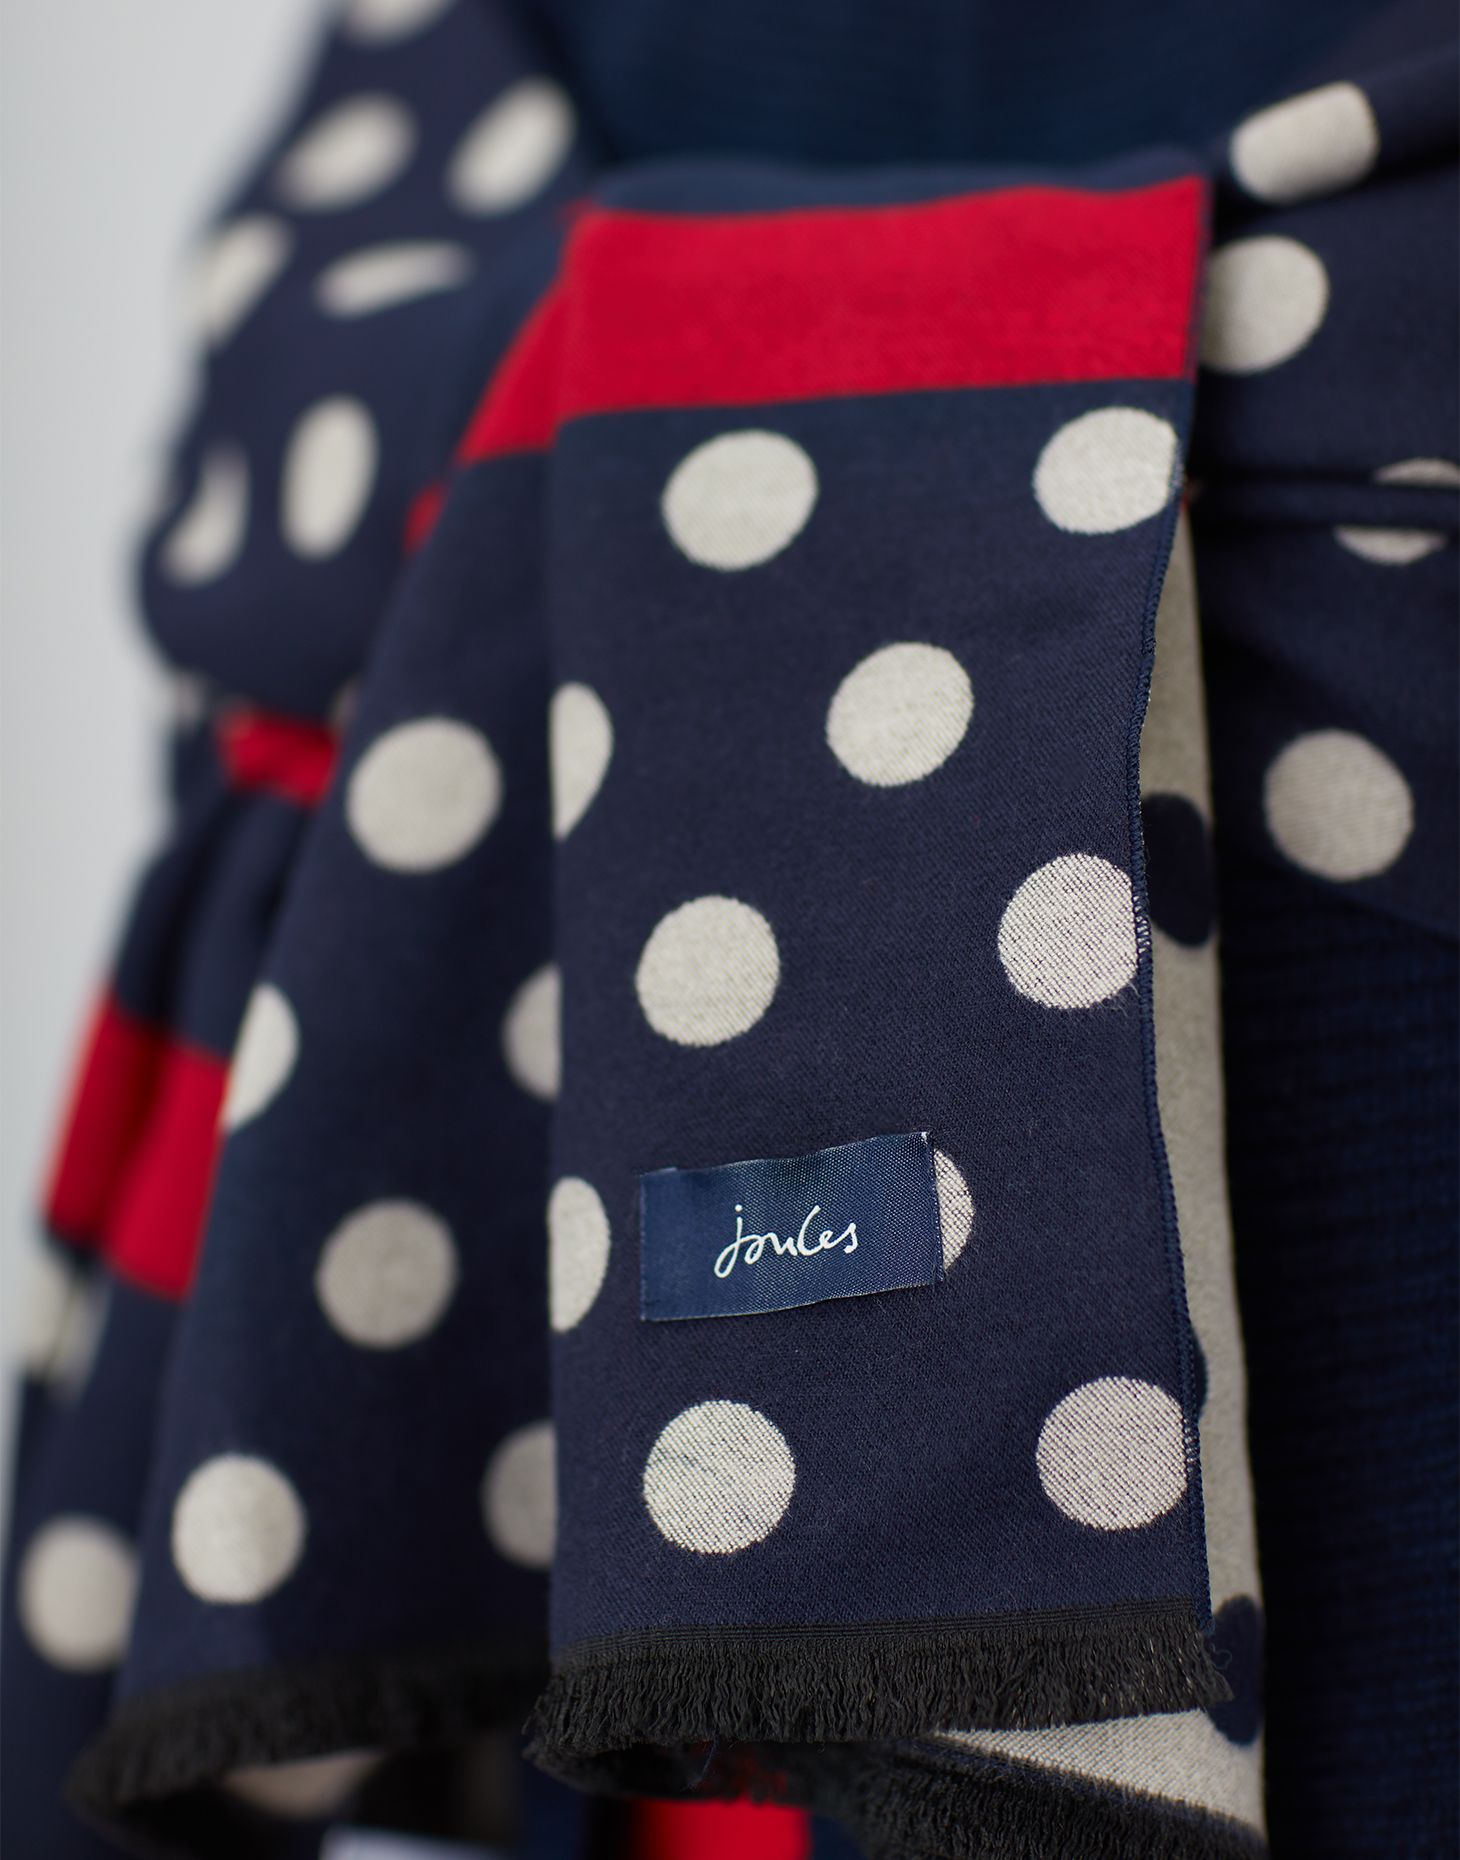 Joules Womens Jacquelyn Jacquard Scarf in FRENCH NAVY SPOT in One Size 2